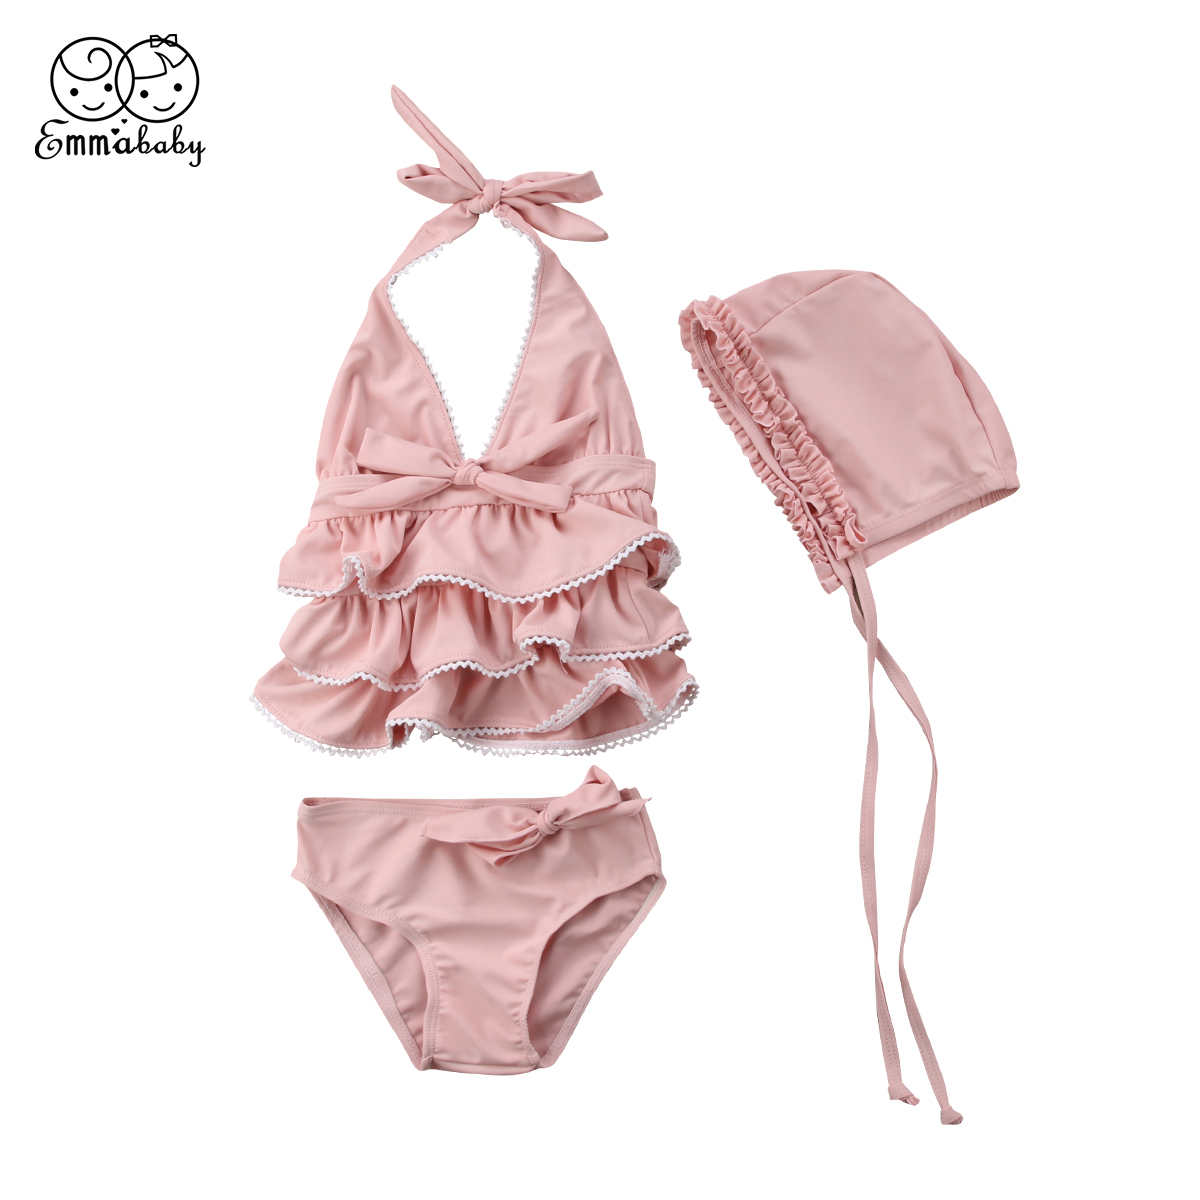 Emmababy Baby Girls Ruffle Swimsuit Bathing Costume Party Swimwear Tops+Bottoms+Hat 3PCS